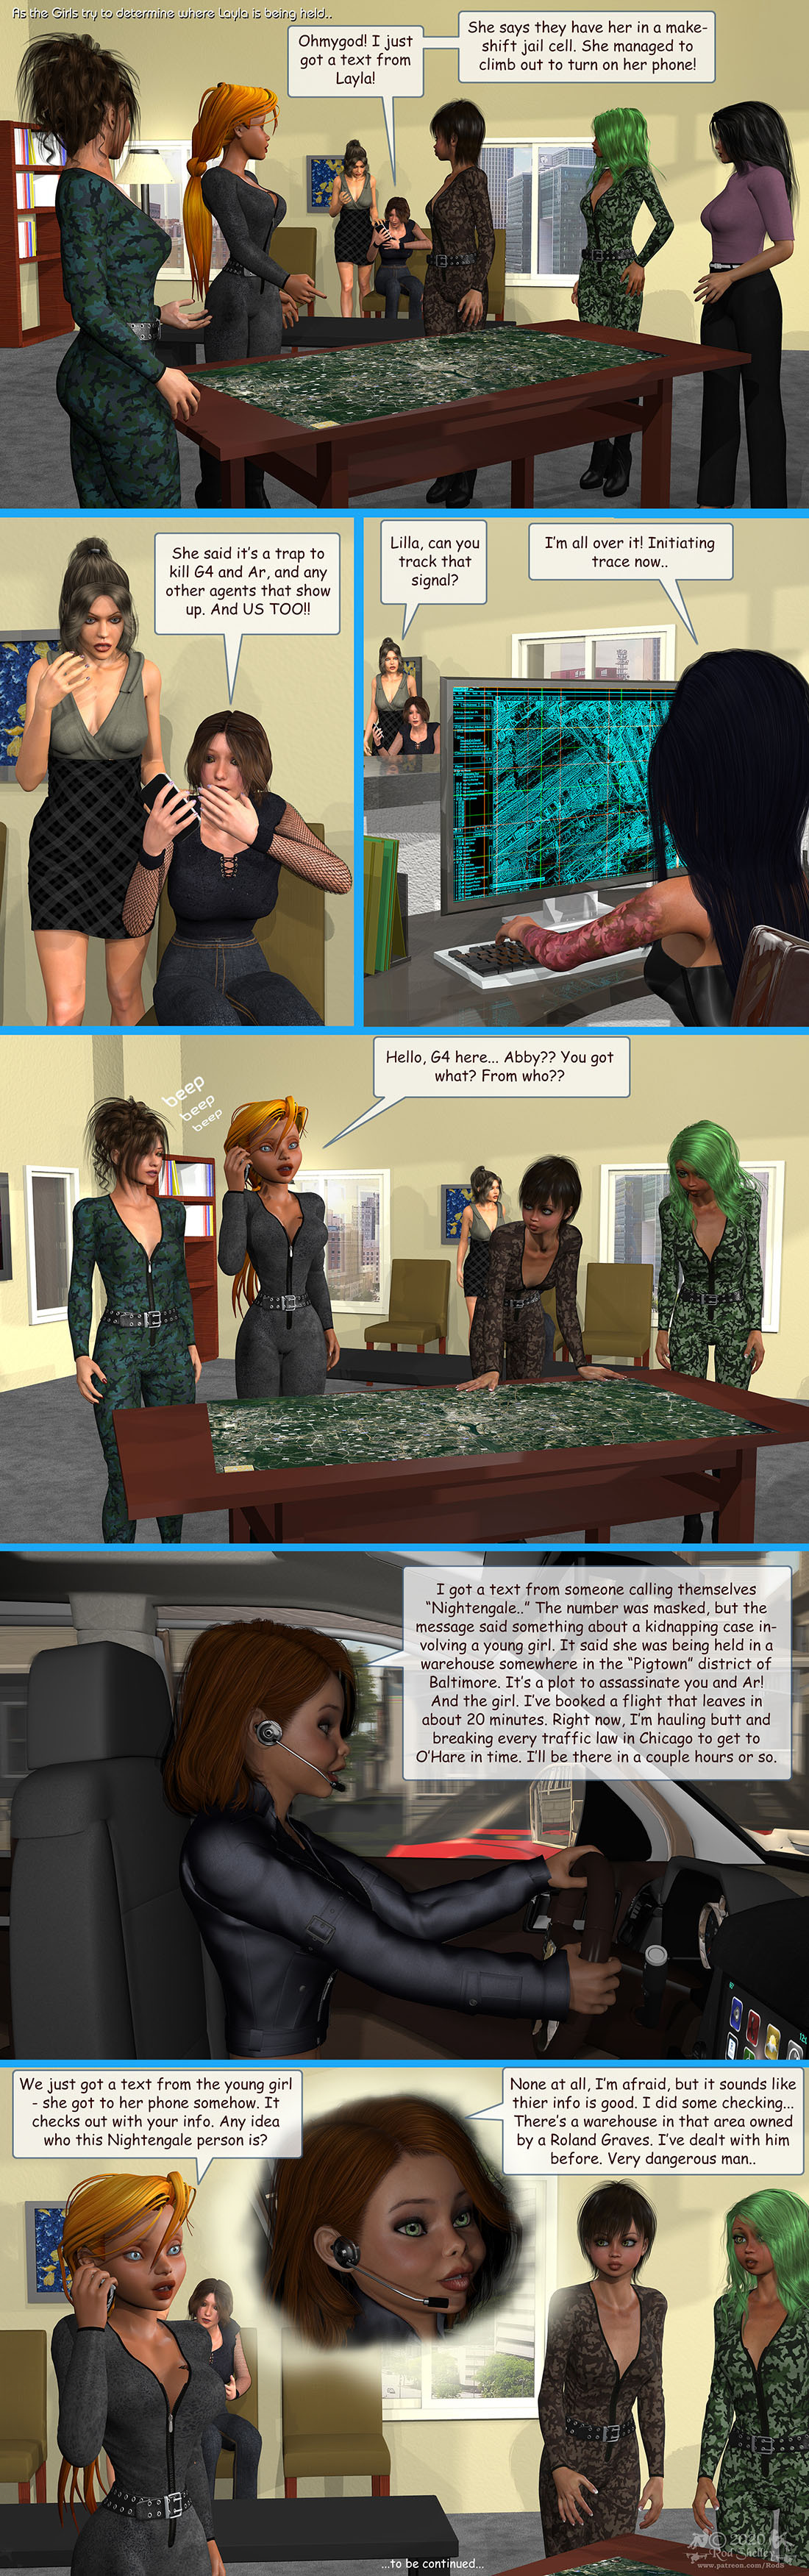 Girls From T.N.A: Breitlenger Jar: Ch 7 Page 11 by RodS